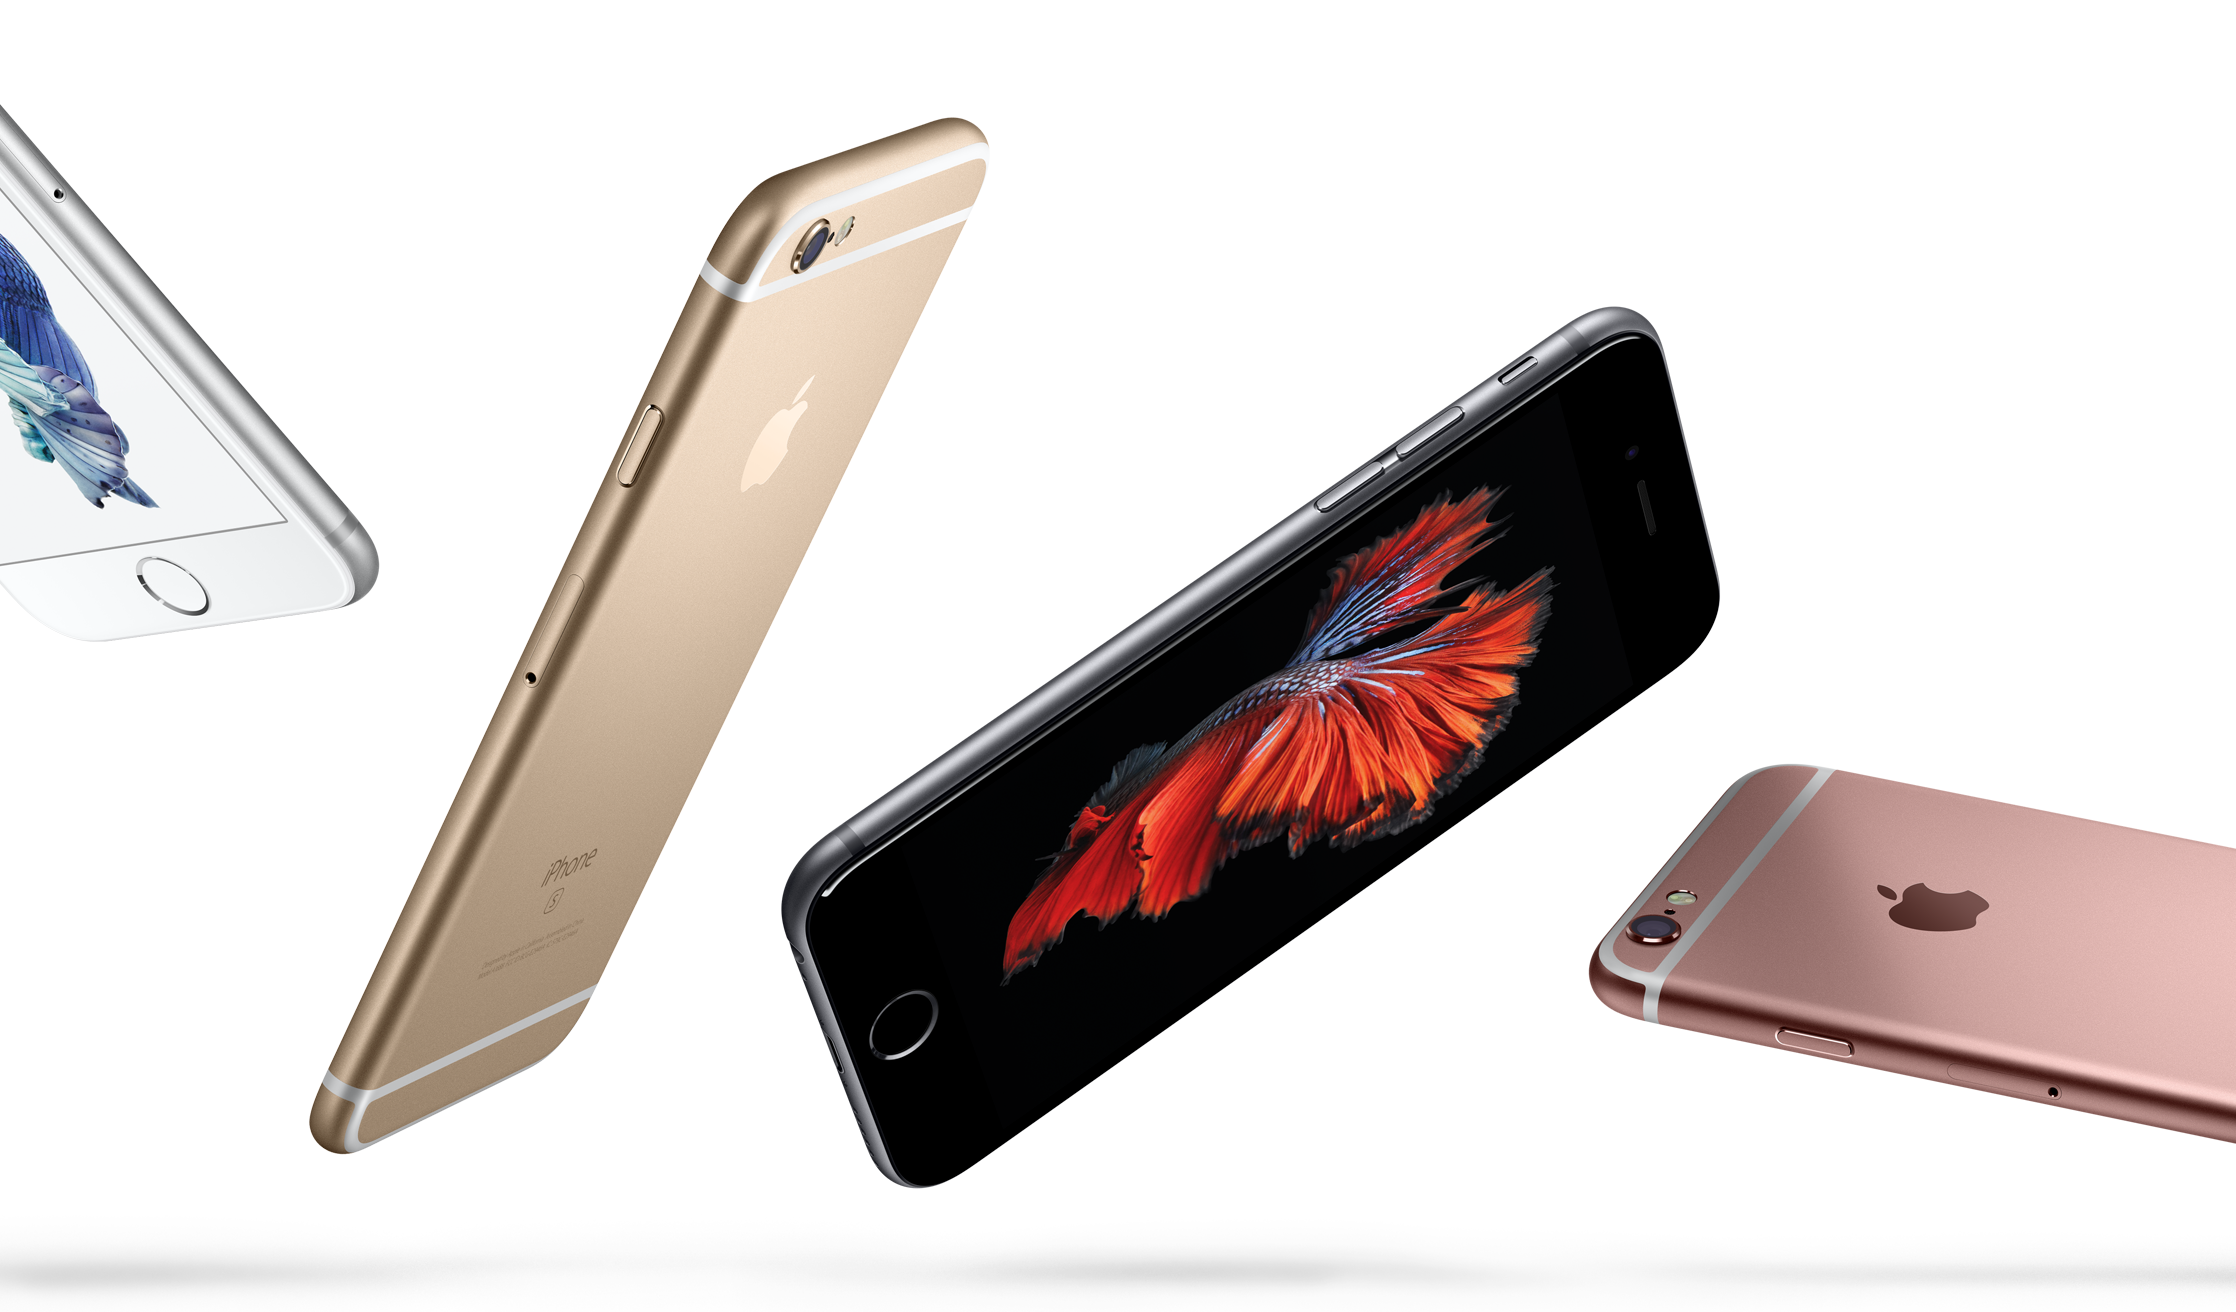 Apple анонсировала iPhone 6s и iPhone 6s Plus